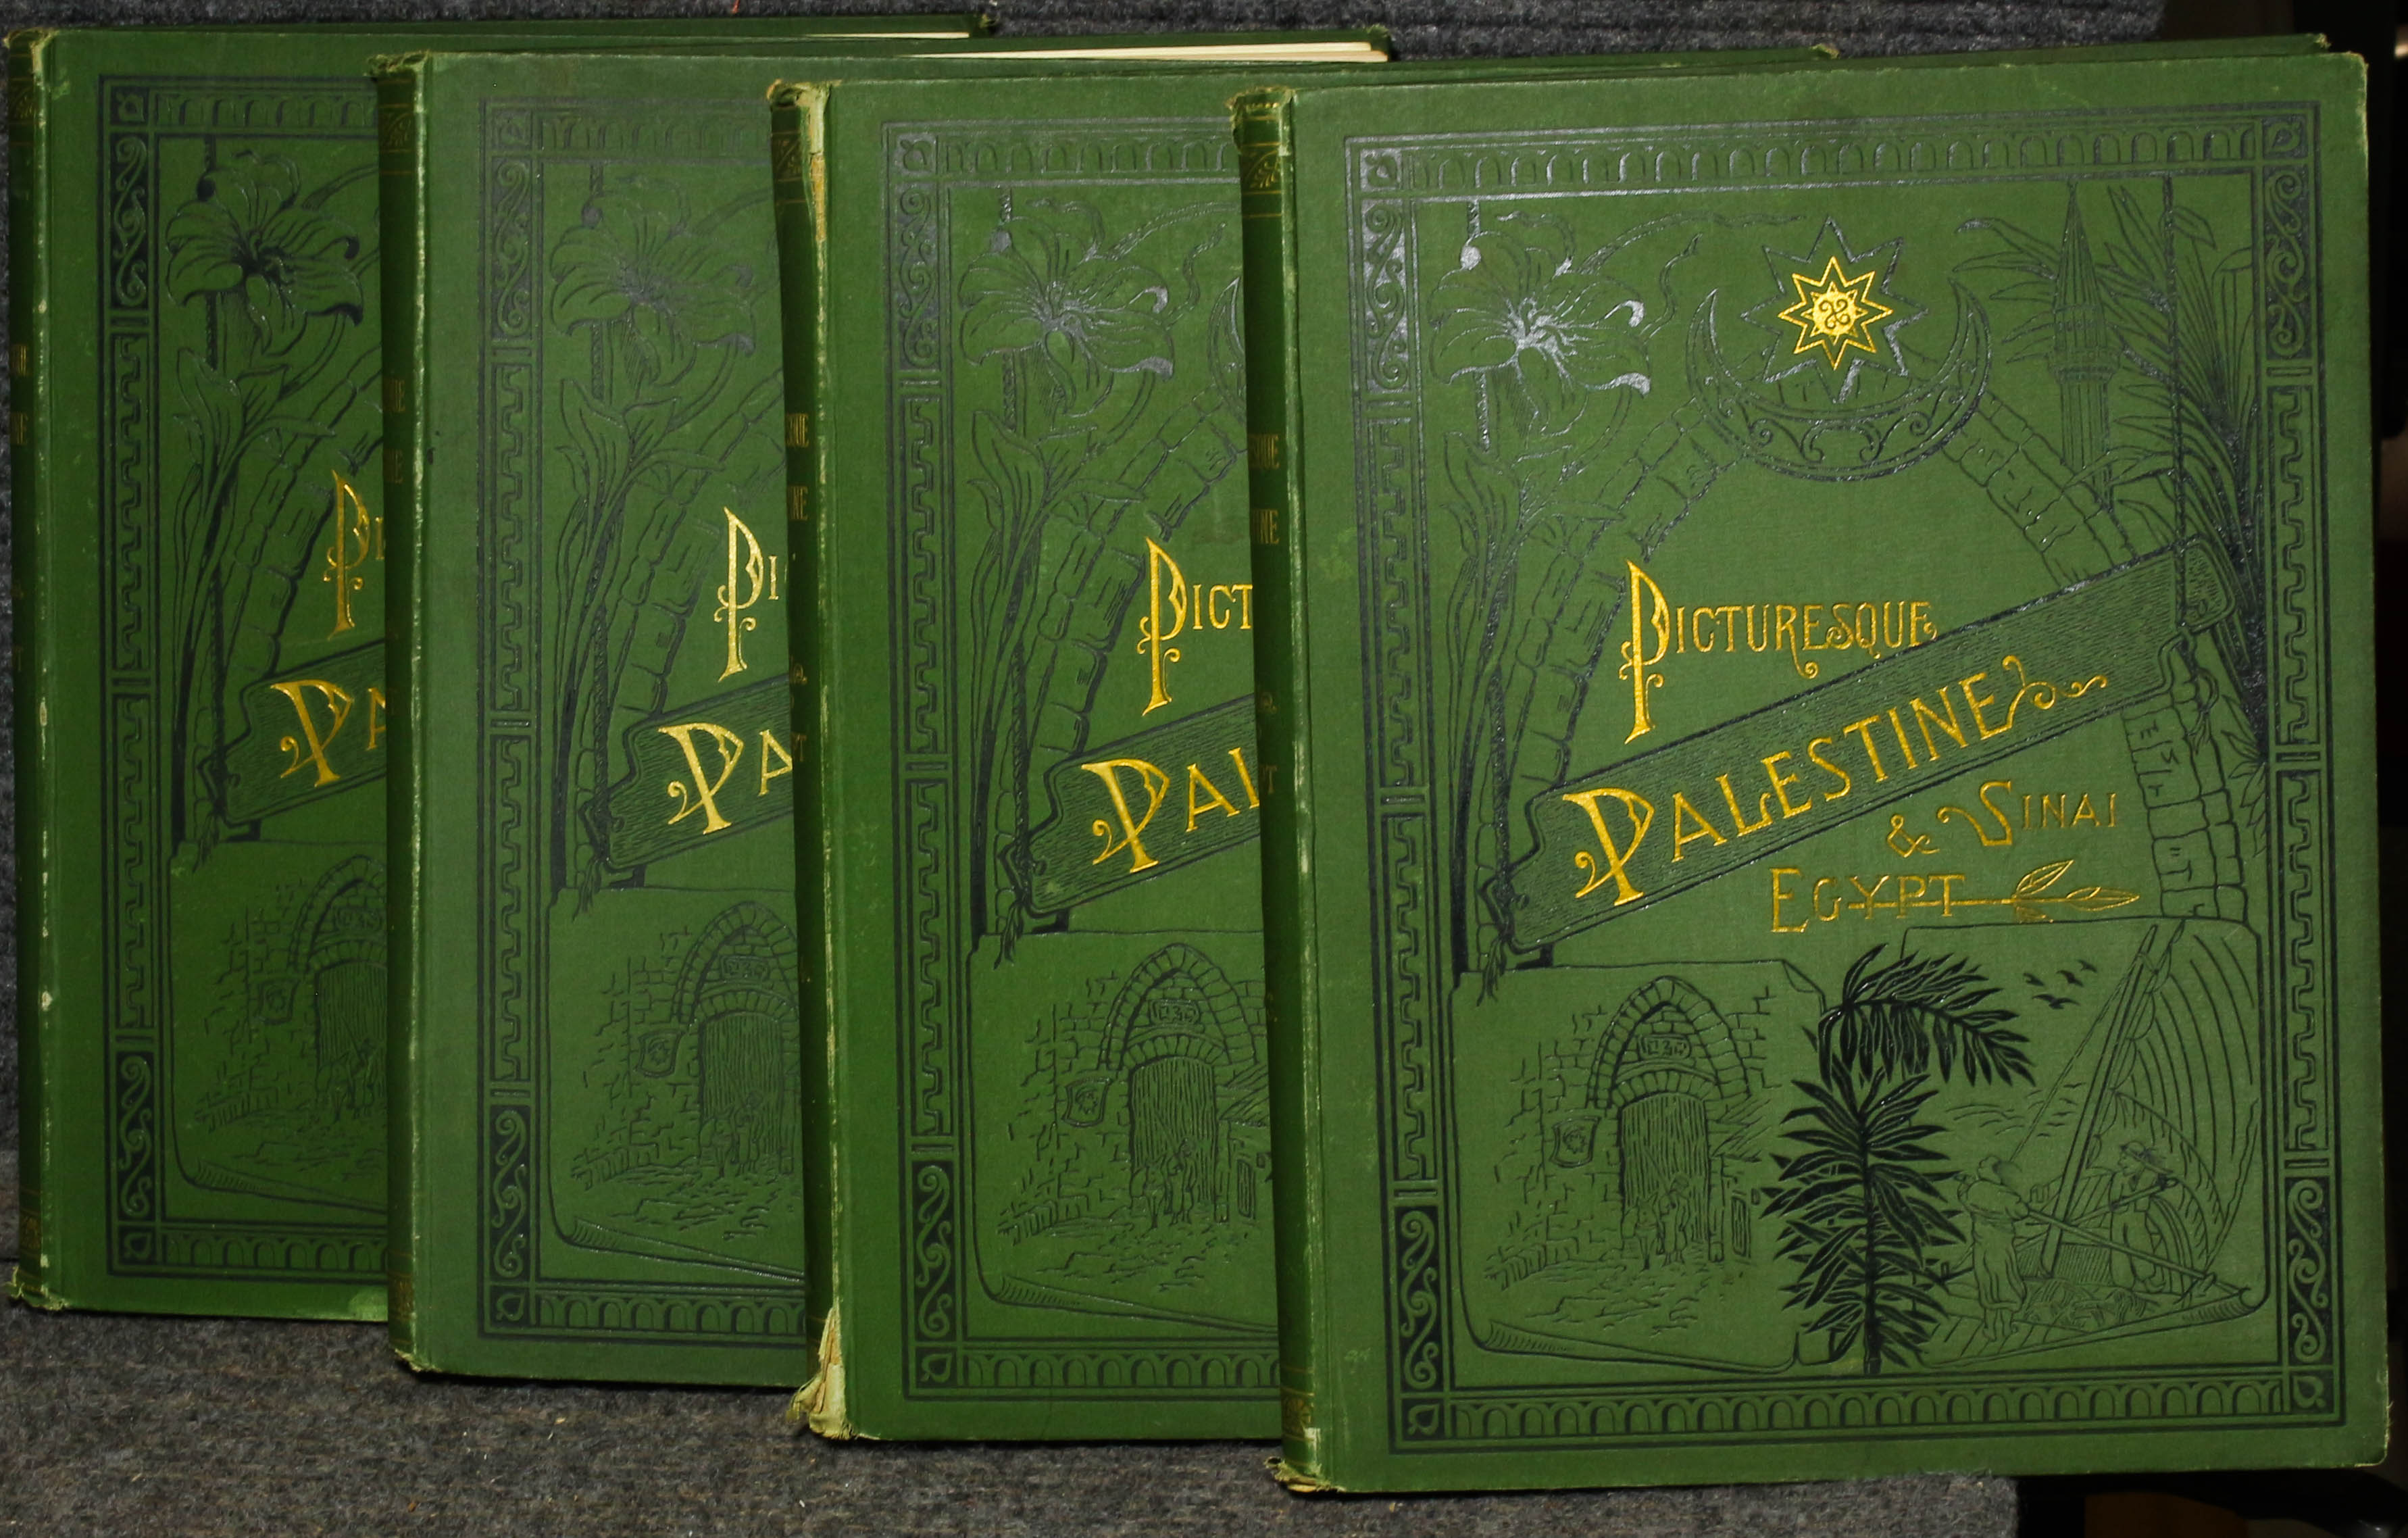 Image for Picturesque Palestine, Sinai & Egypt Ct 4 Vols Illustrated 1881 4to